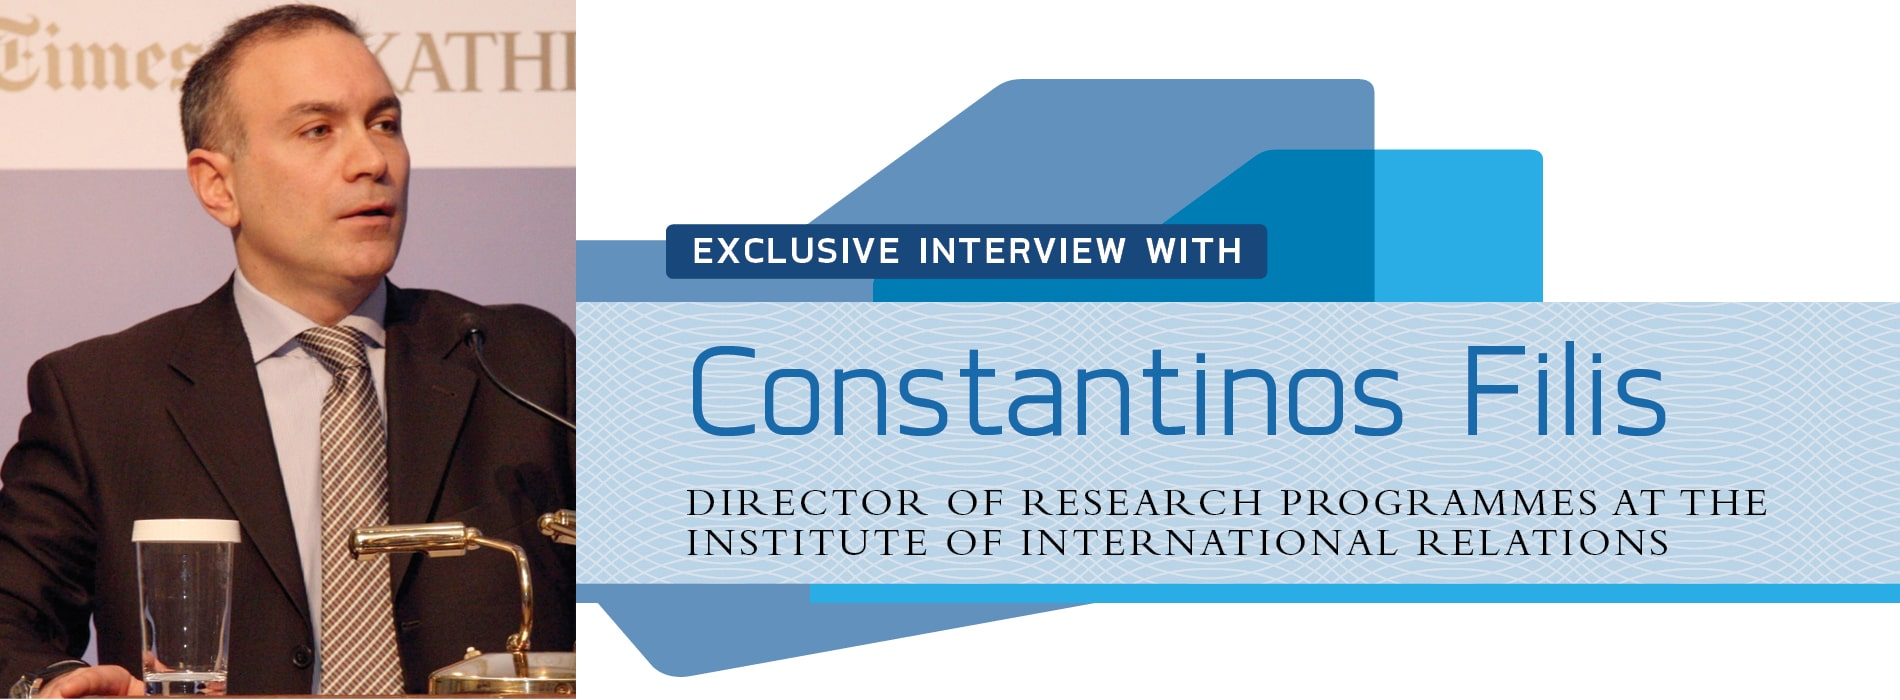 Interview with Constantinos Filis of the Institute of International Relations